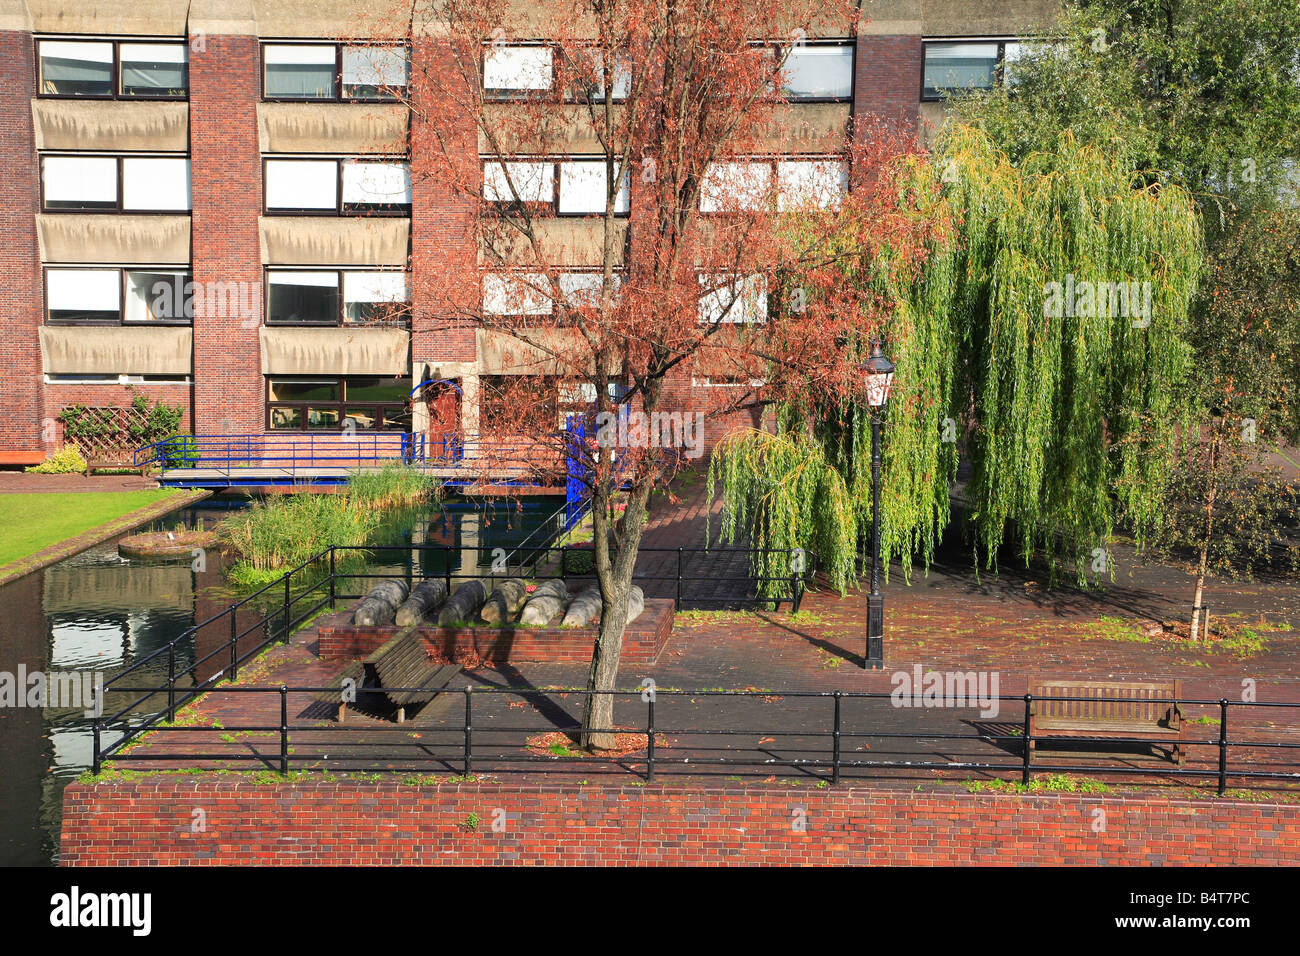 City Of London School For Girls England St Giles Terrace Barbican Stock Photo Alamy